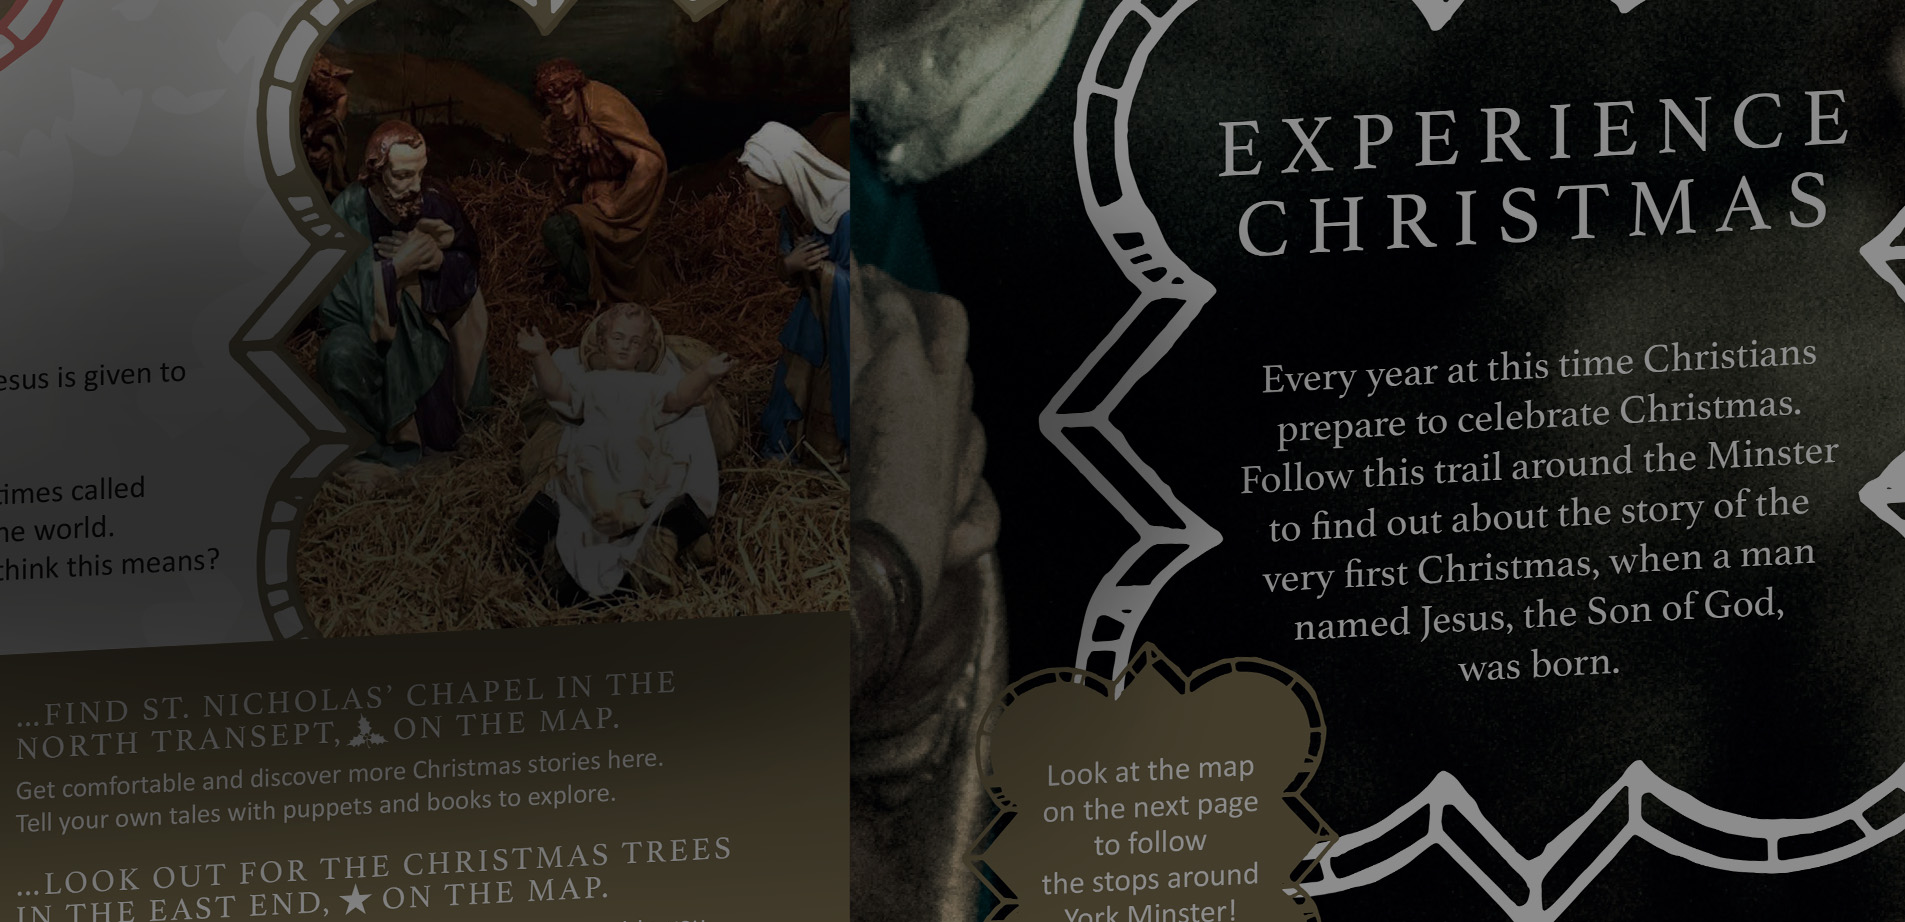 Experience Christmas trail